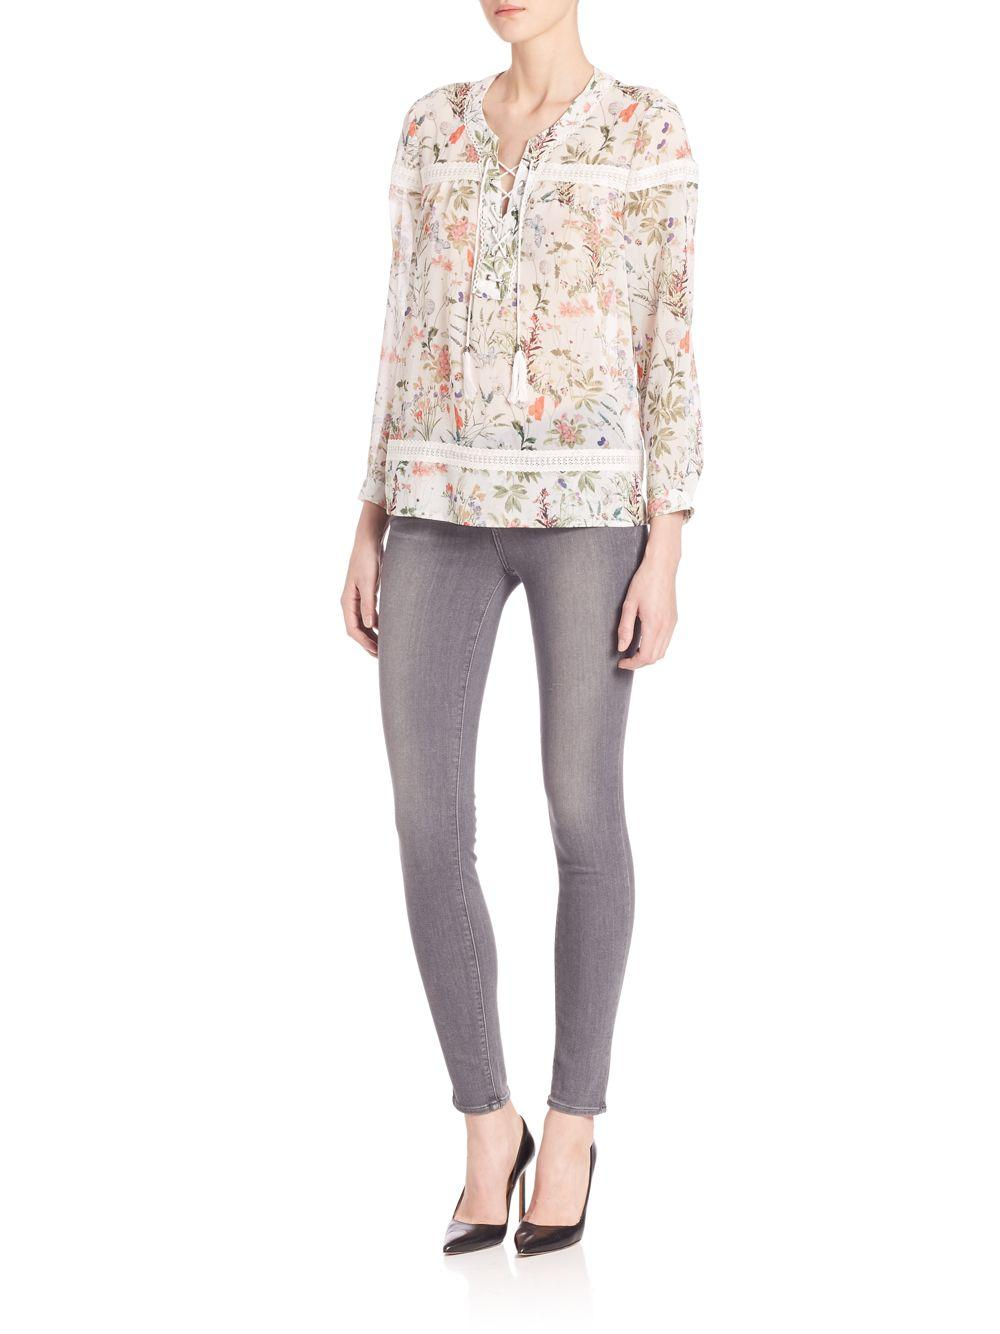 1ad64fd4a23 Lyst - The Kooples Botanic Chiffon Lace-up Top in White